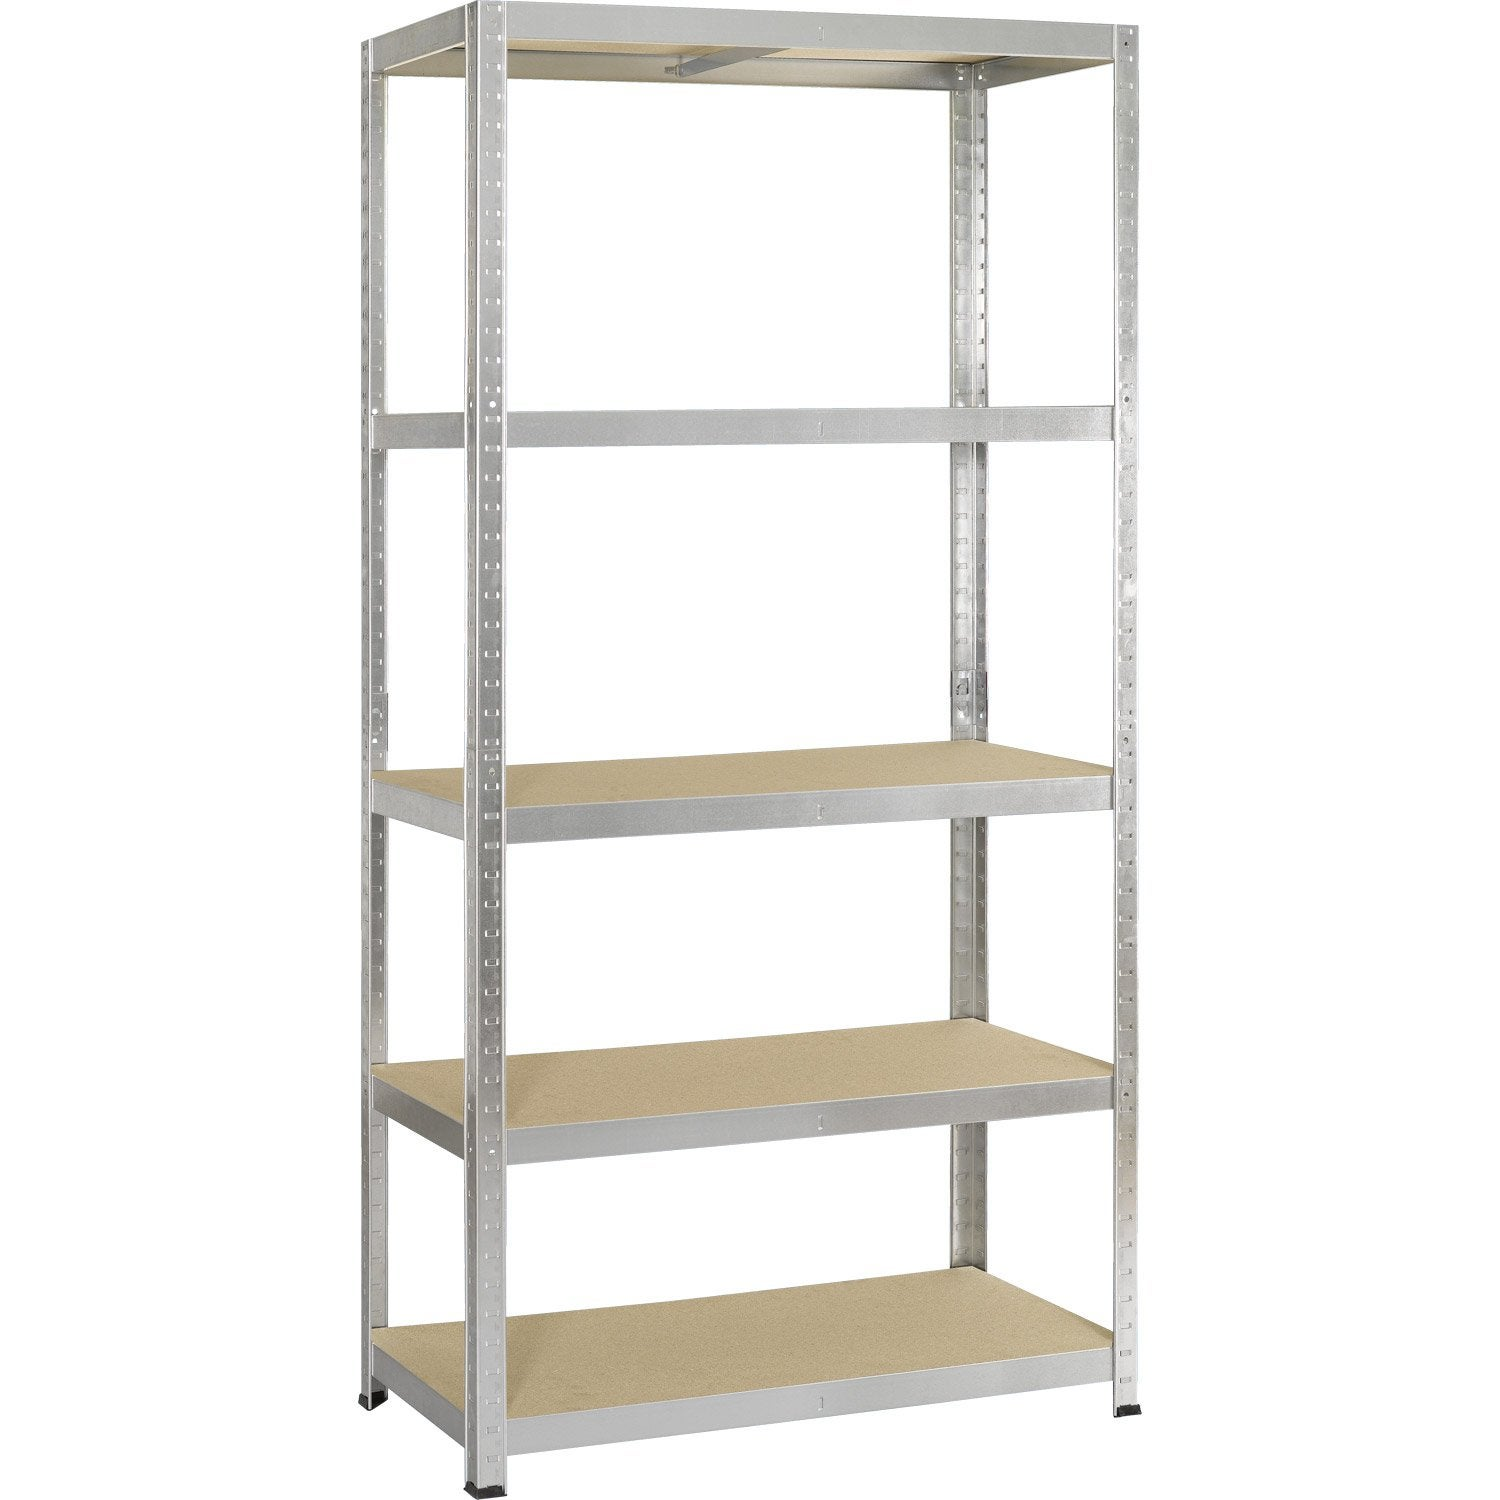 Etag re acier avasco strong 5 tablettes galva x x cm lero - Etagere garage leroy merlin ...